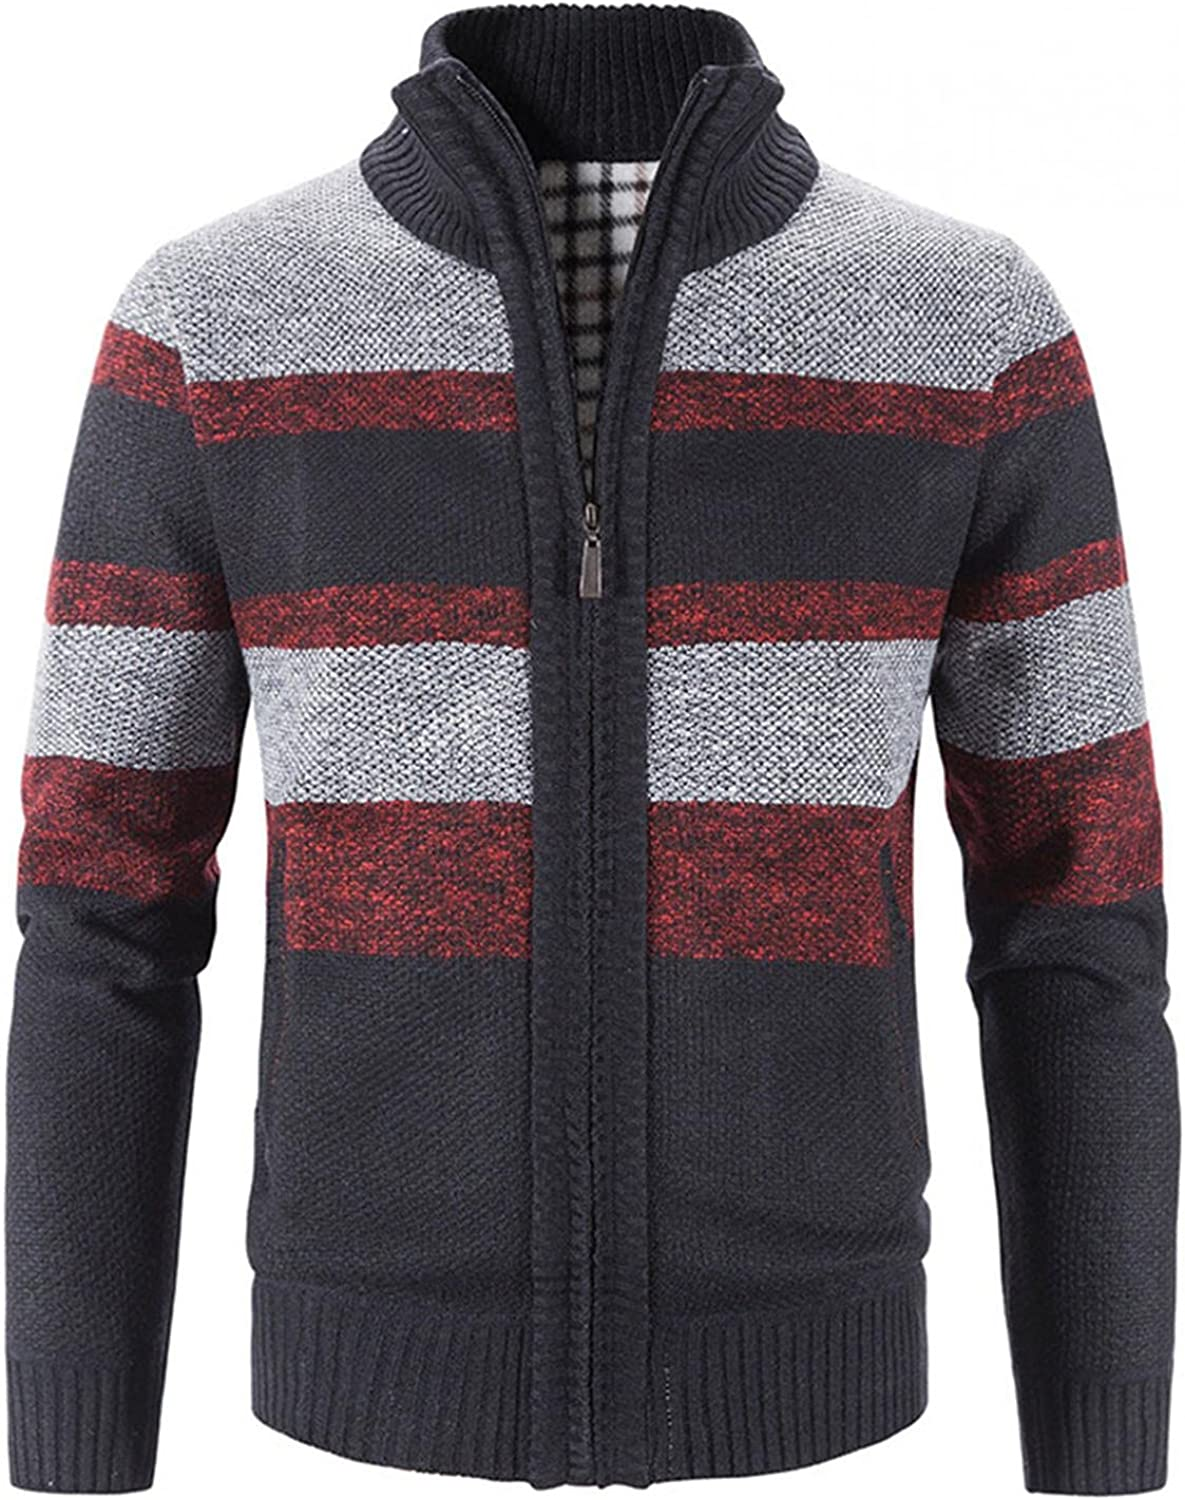 Men's Full Zip Sweaters Patchwork Casual Cardigan Stylish Knitted Long Sleeve Pullover Stand Collar Soft Warm Outwear